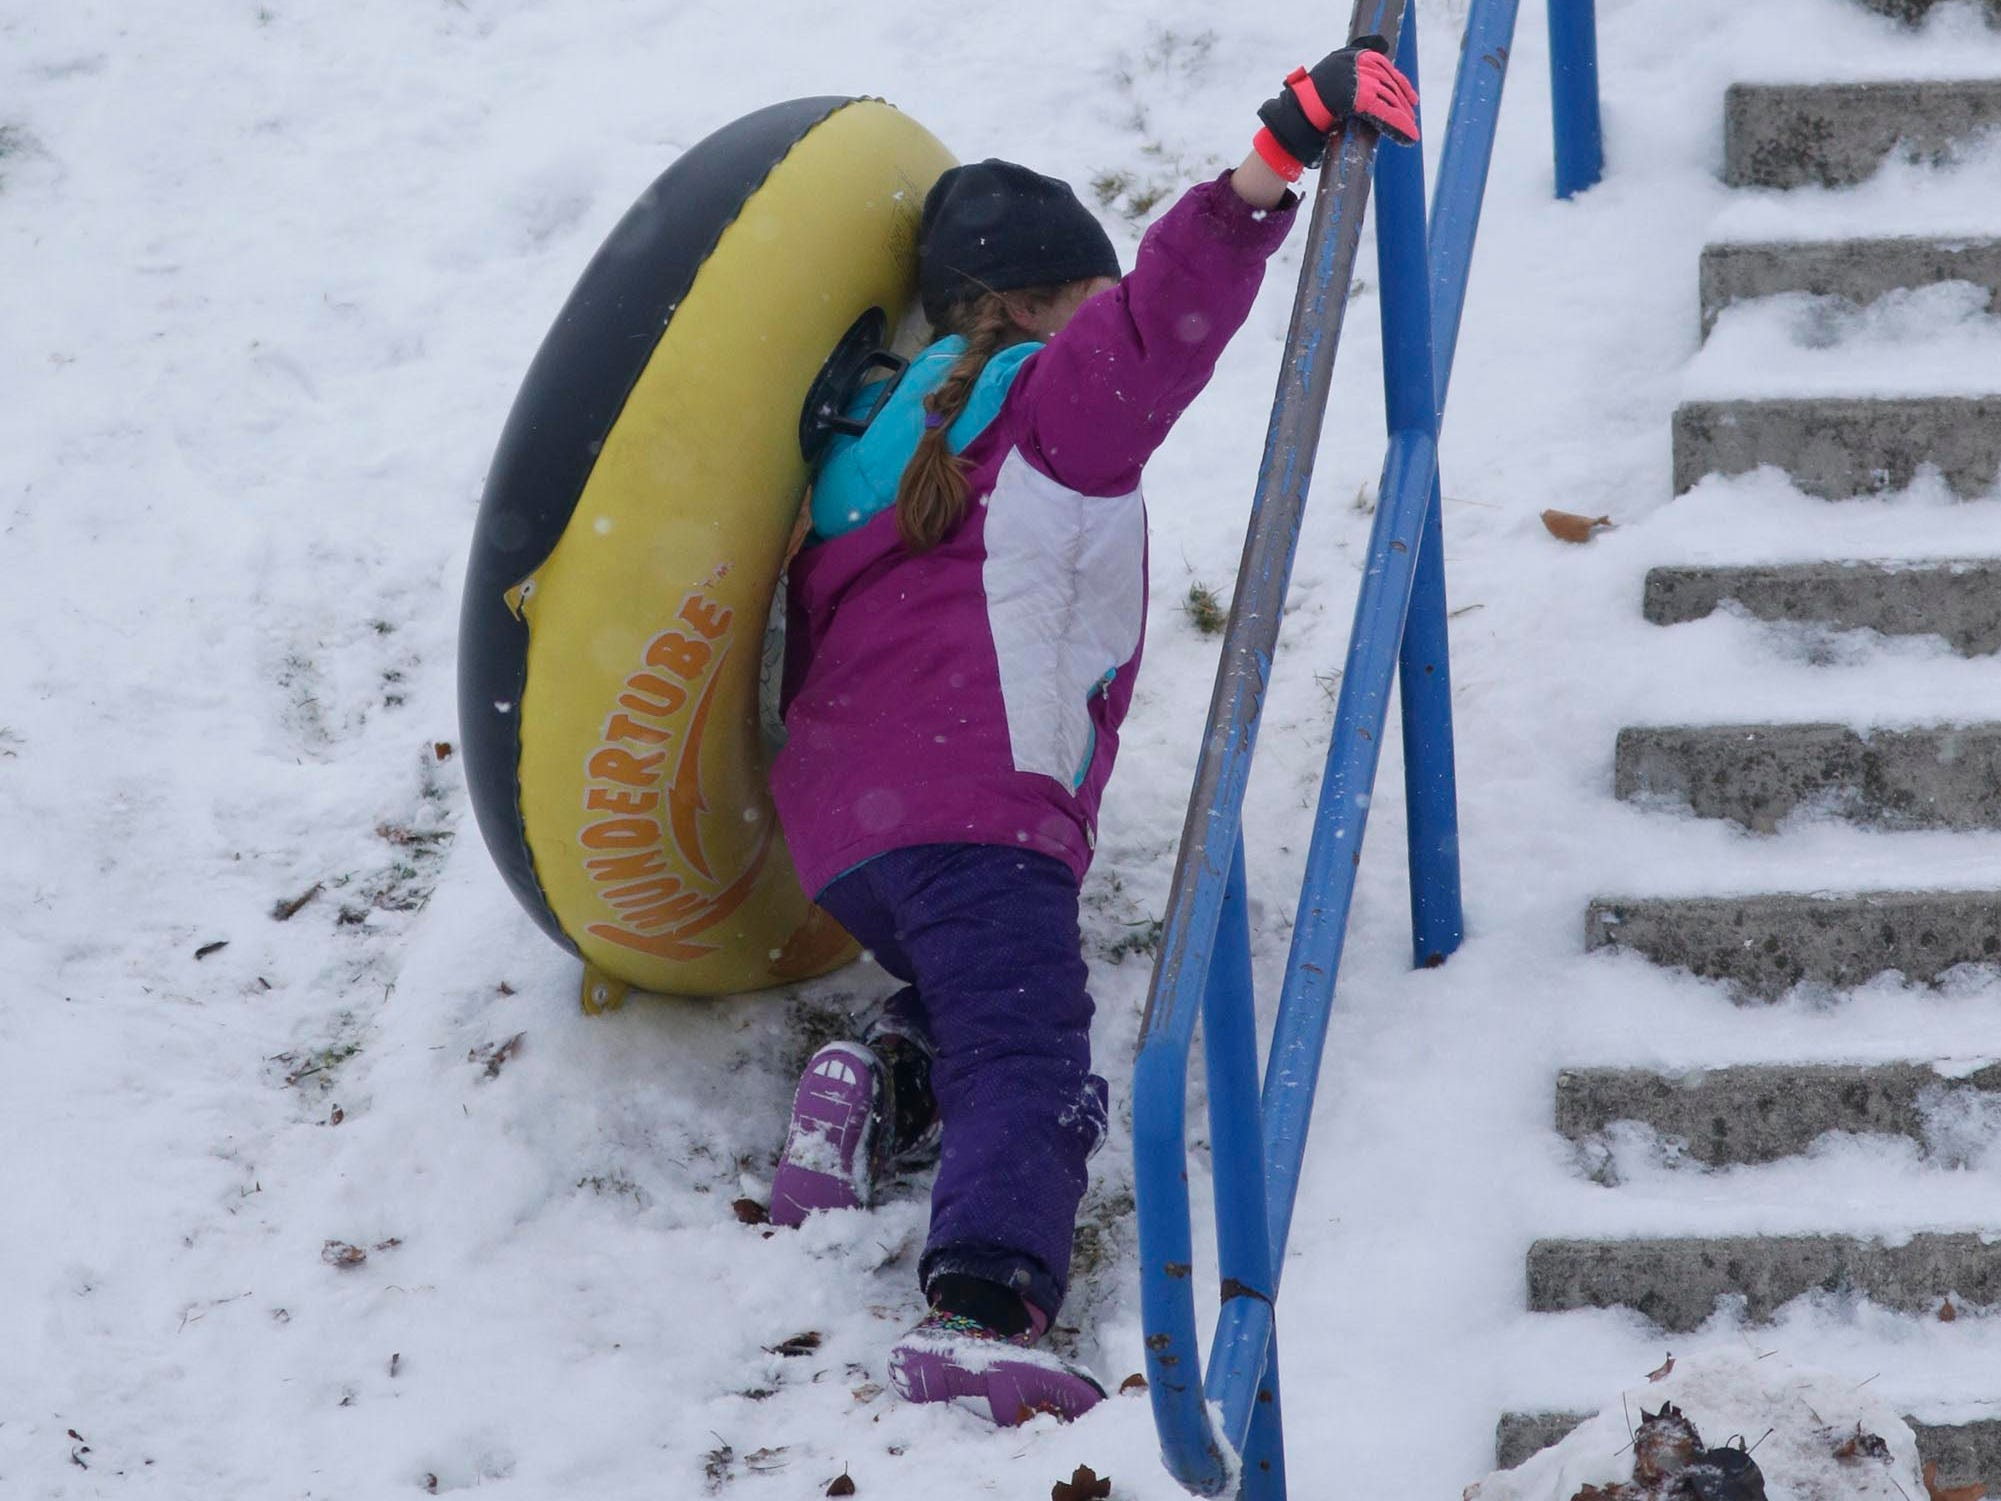 A youngster walks up the hill at Vollrath Bowl after tubing down fresh snow, Wednesday, January 2, 2019, in Sheboygan, Wis.